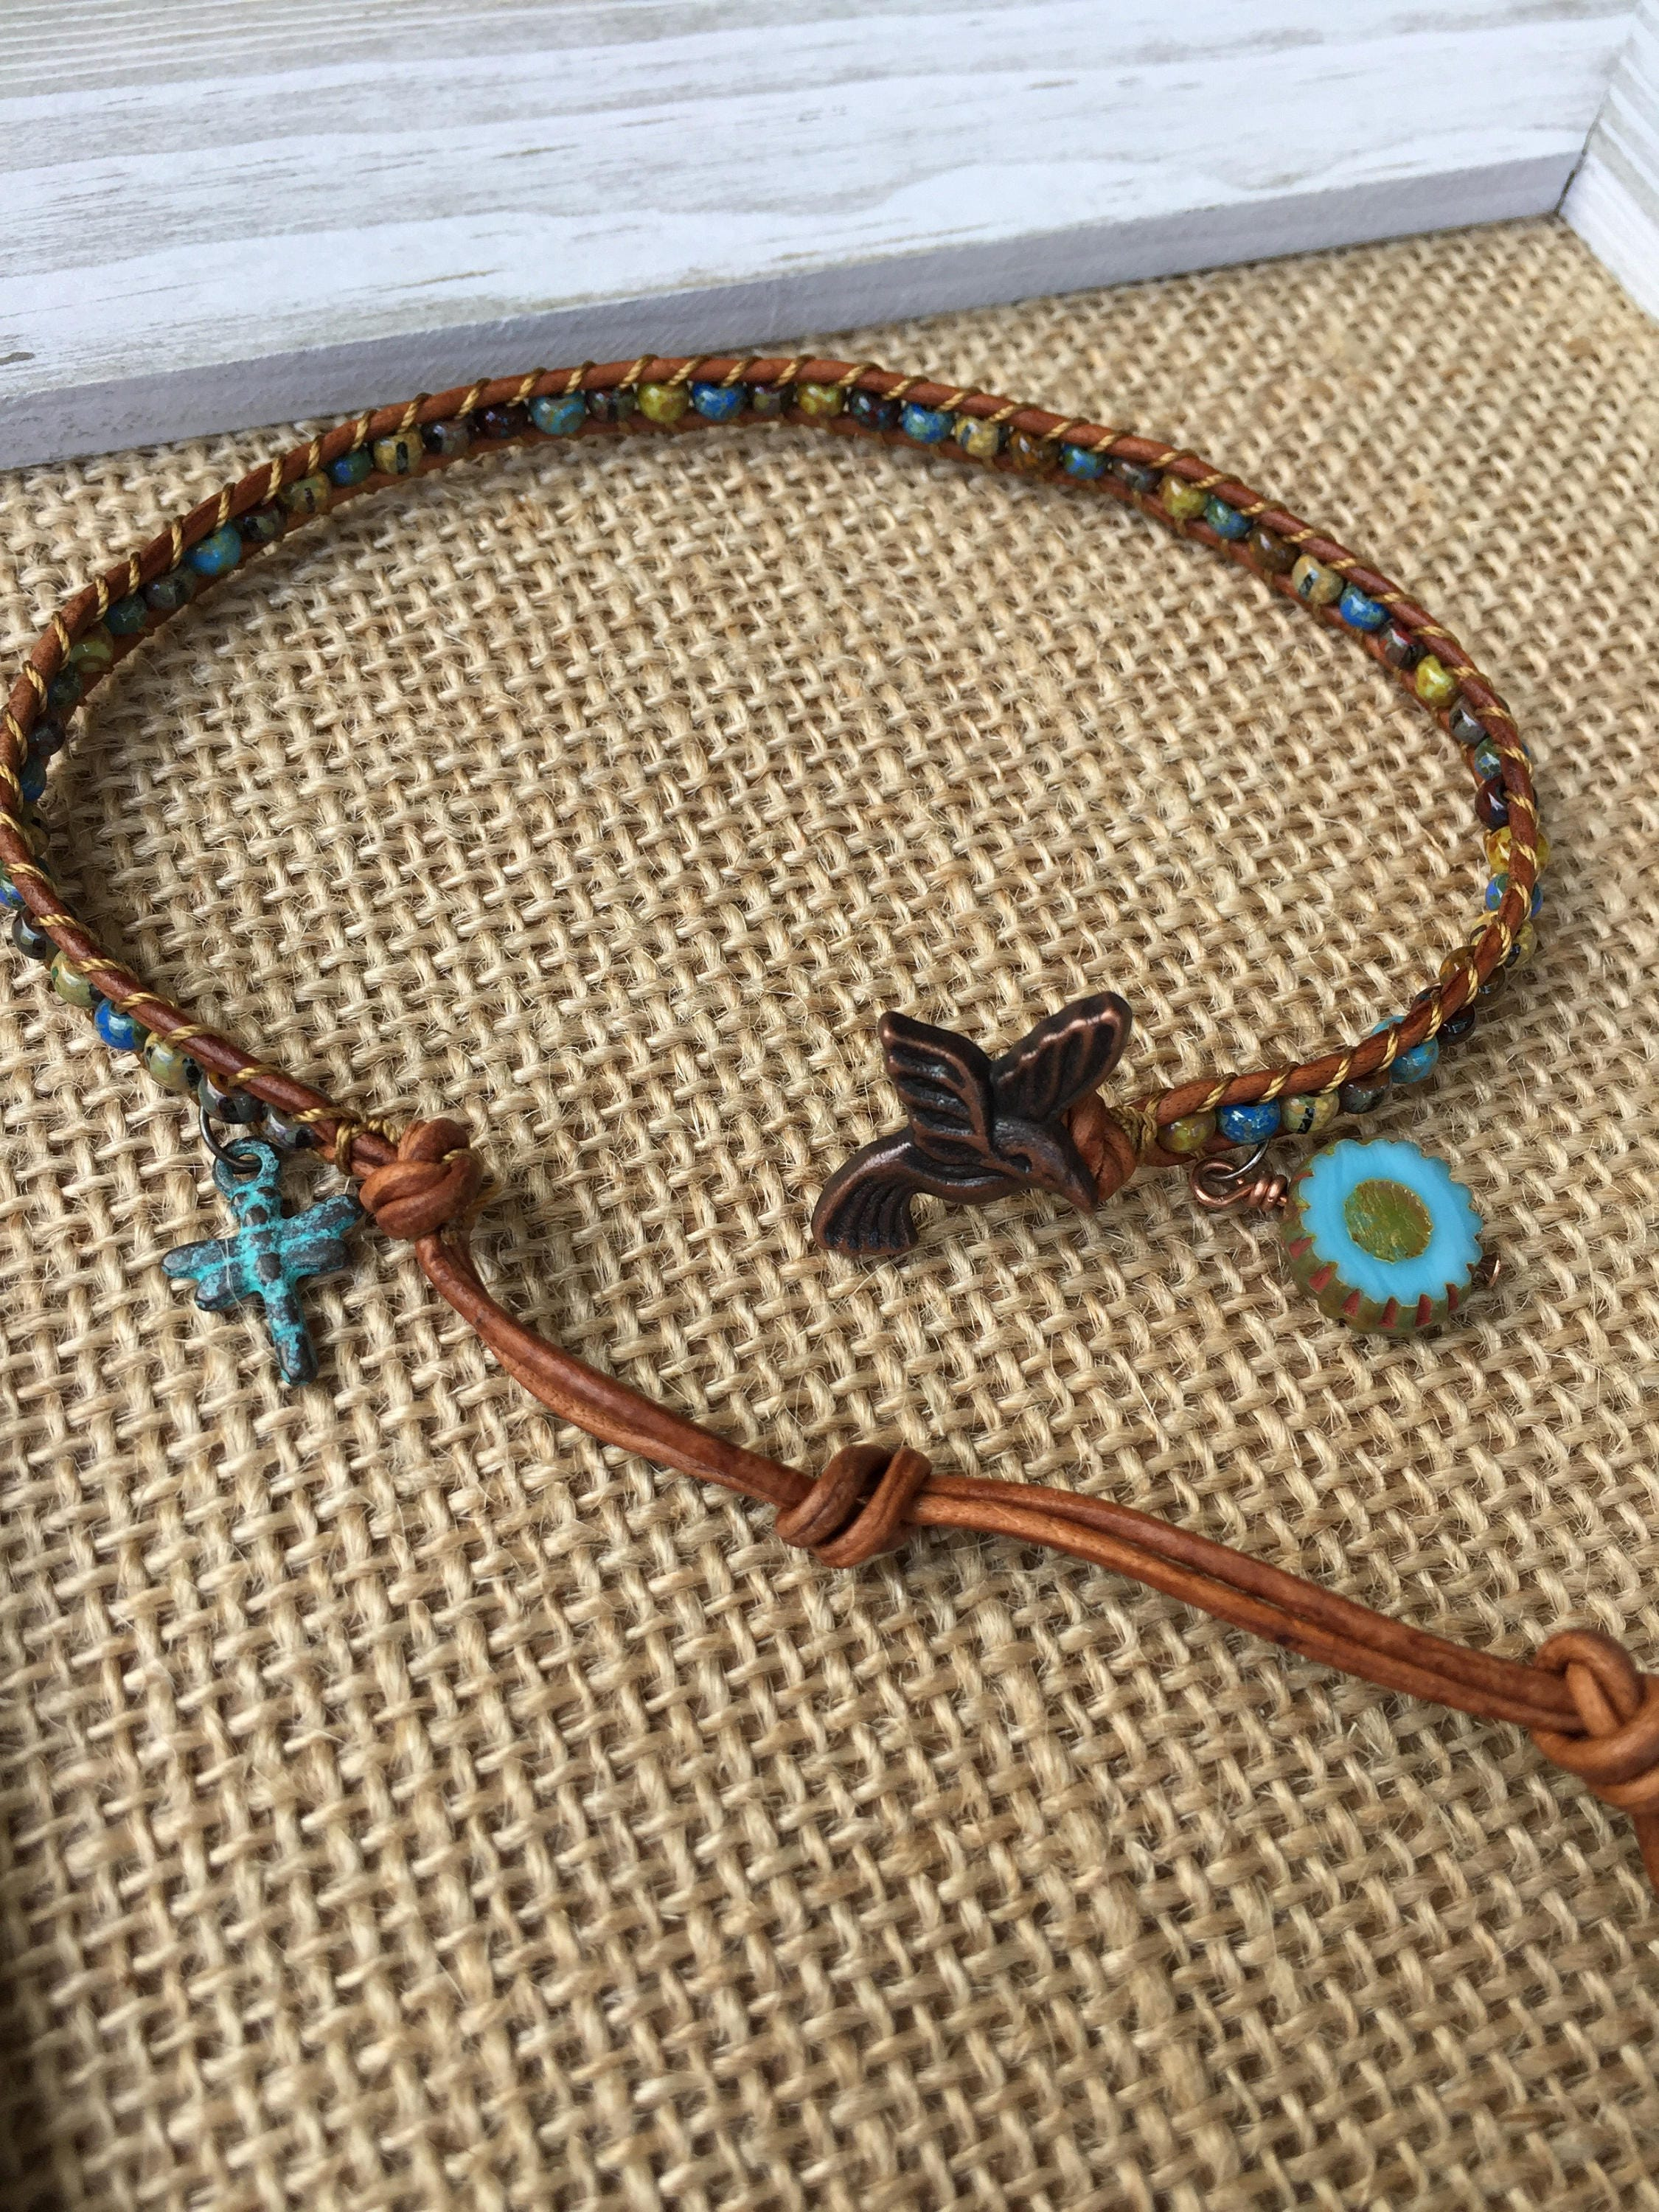 jewelry boho chic anklet bracelets caymancode hummingbird p bracelet made leather usa bohemian in dragonfly cute flower ankle